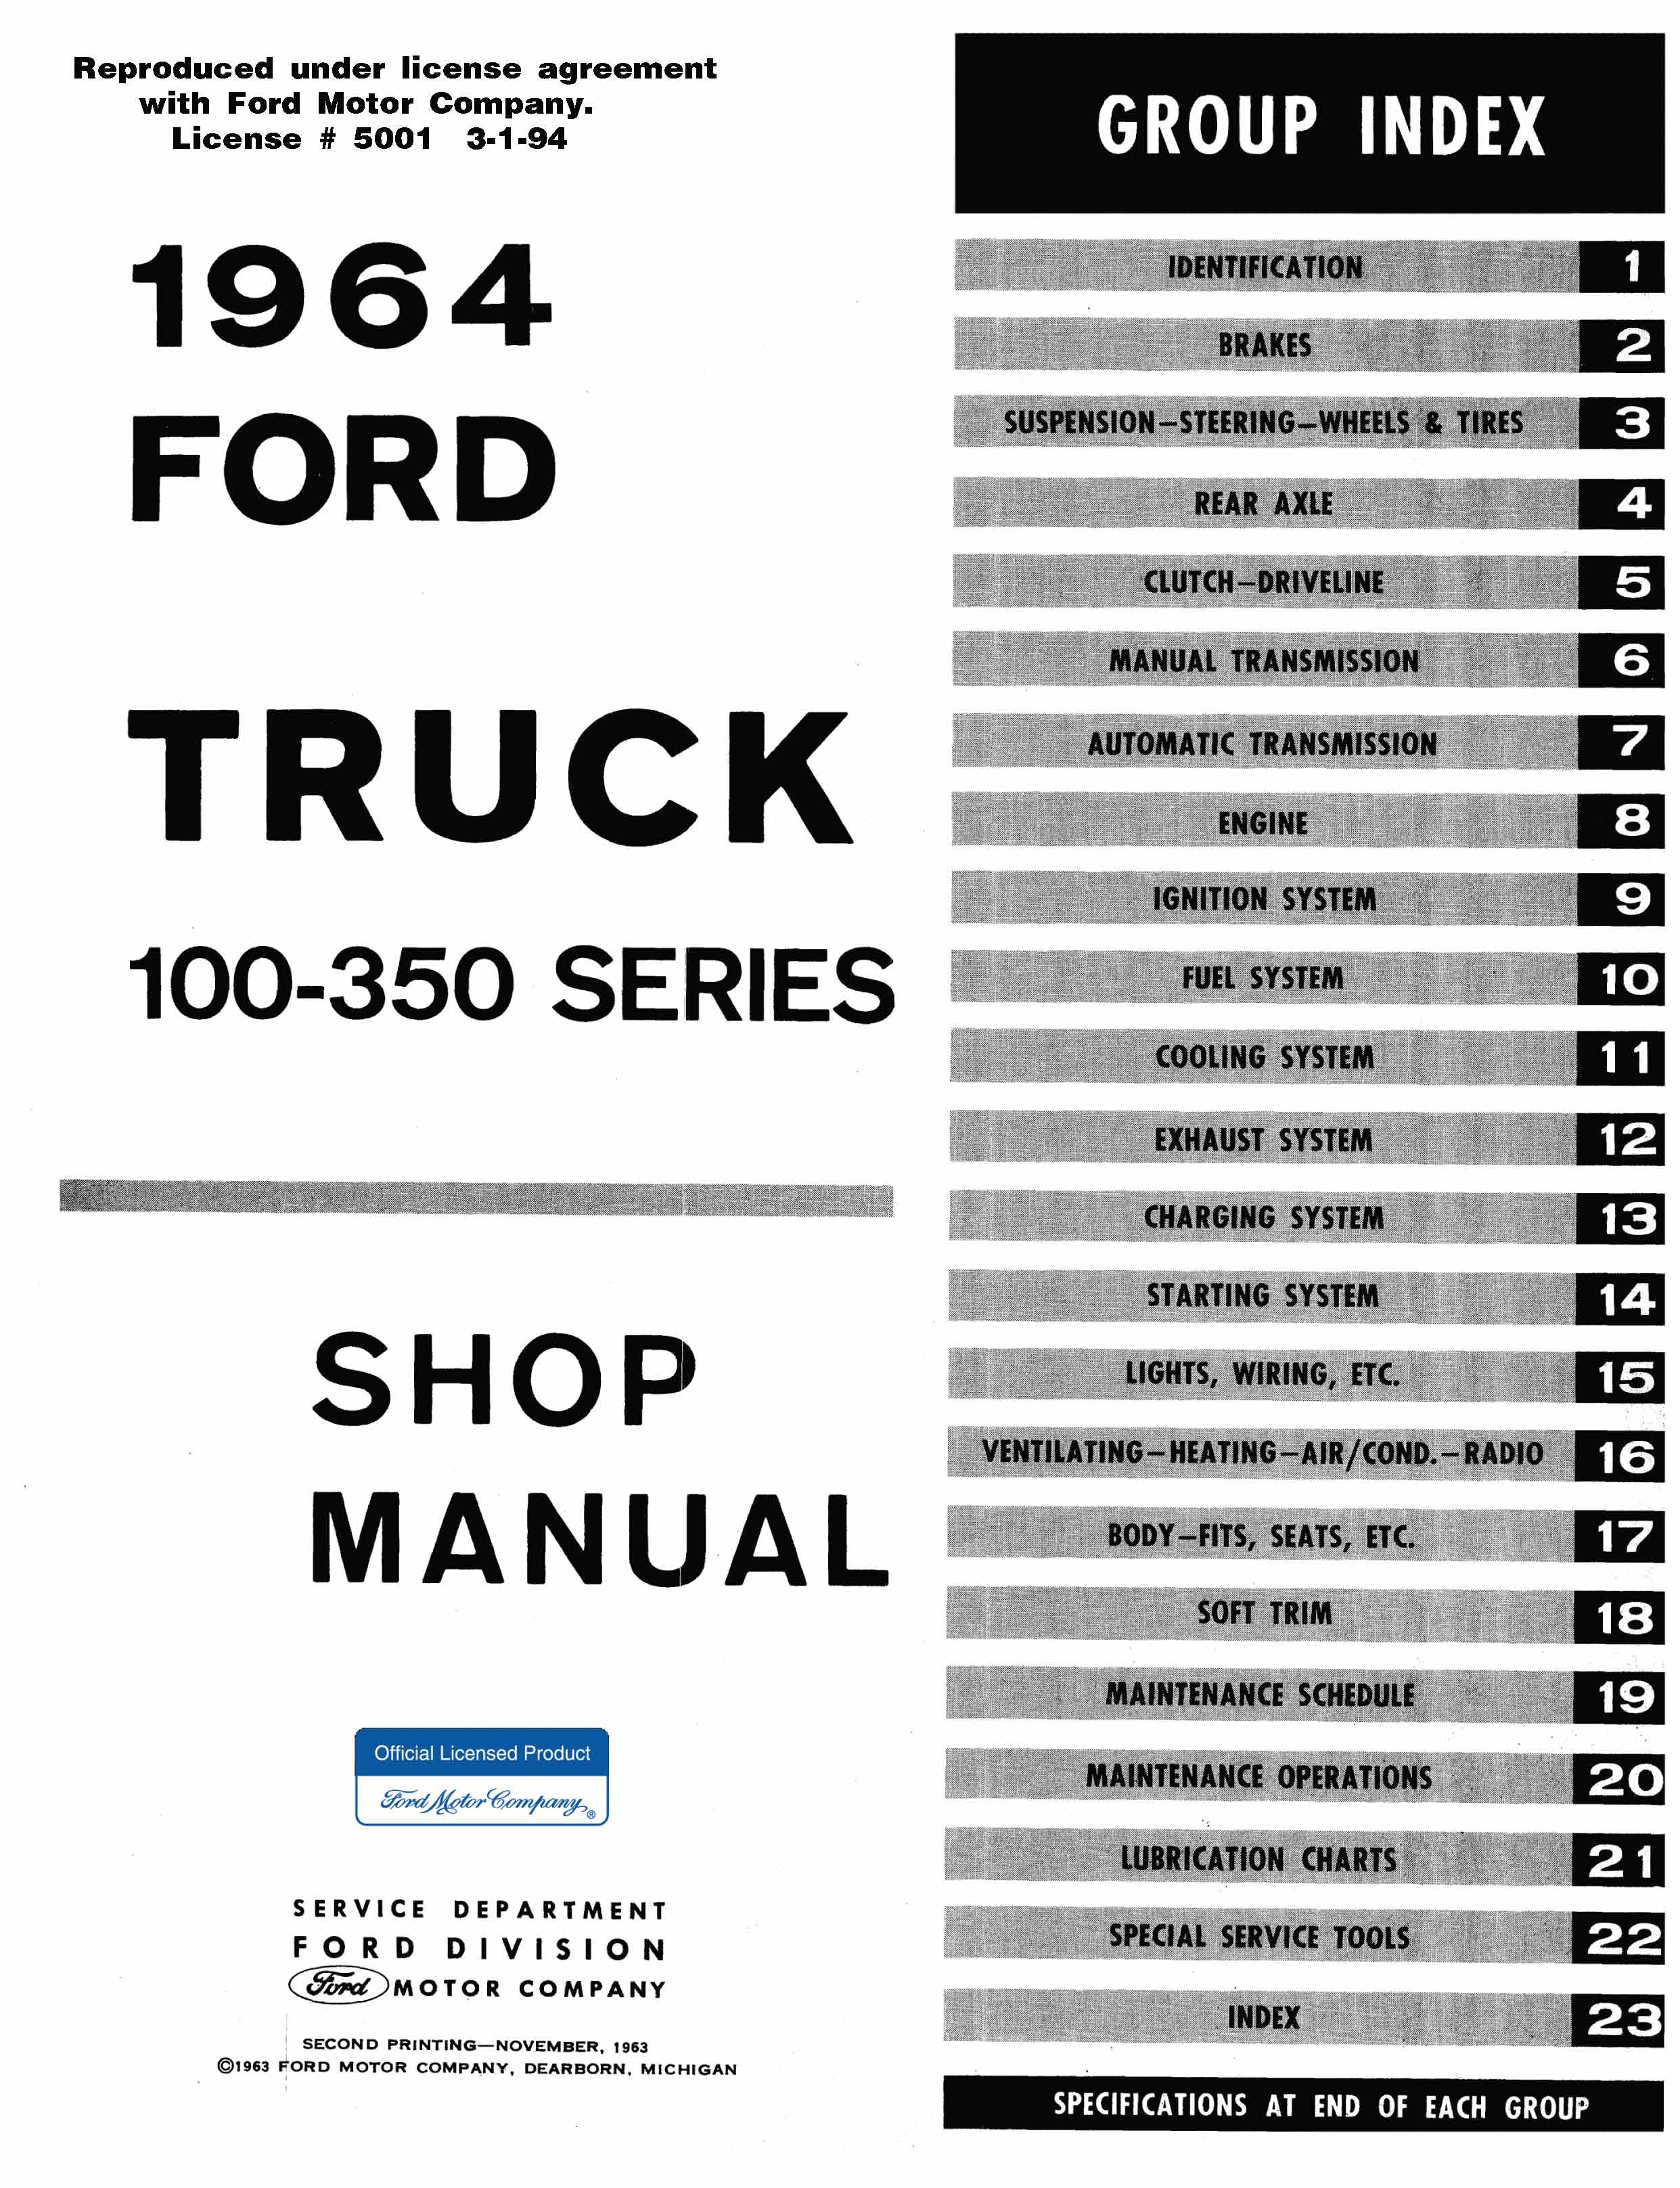 1964 Ford Truck Repair Manual